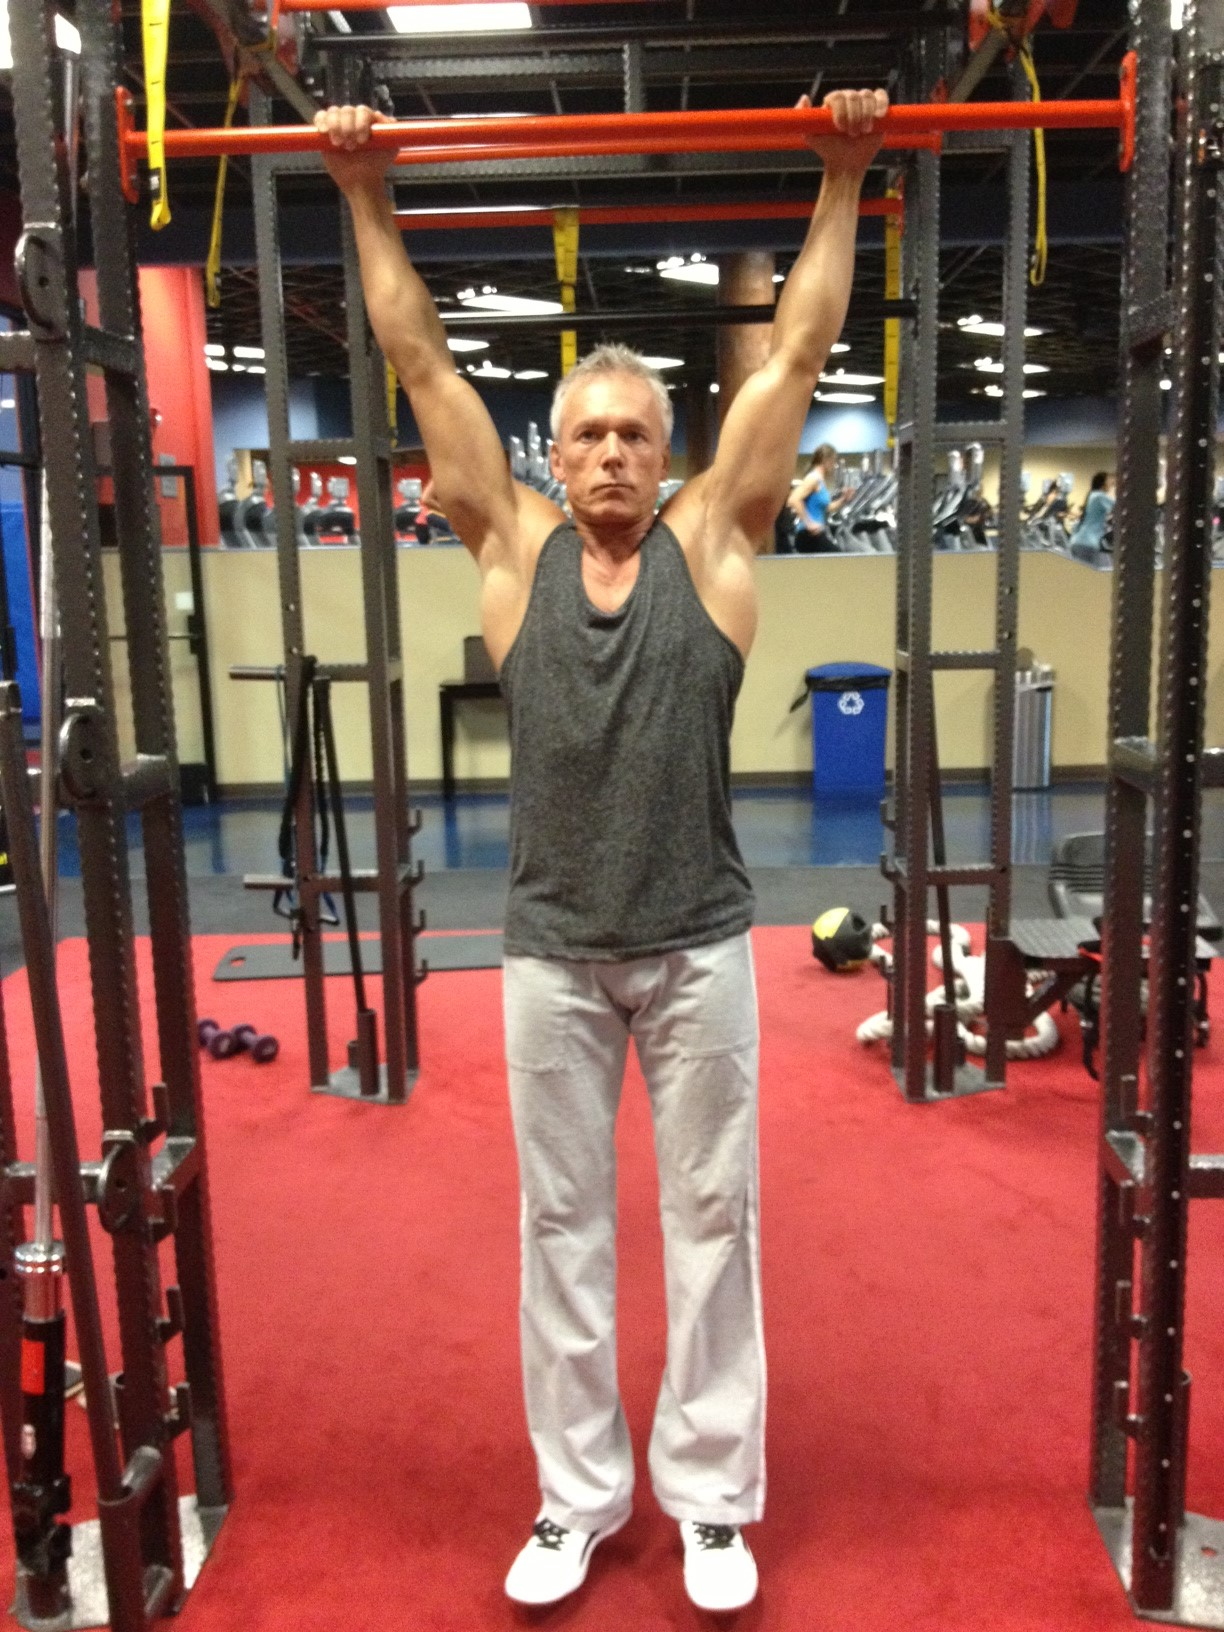 Captains chair leg raise muscles worked - Hanging Leg Raises Hanging Knee Raises To Waist Leg Raises To Top Of Bar